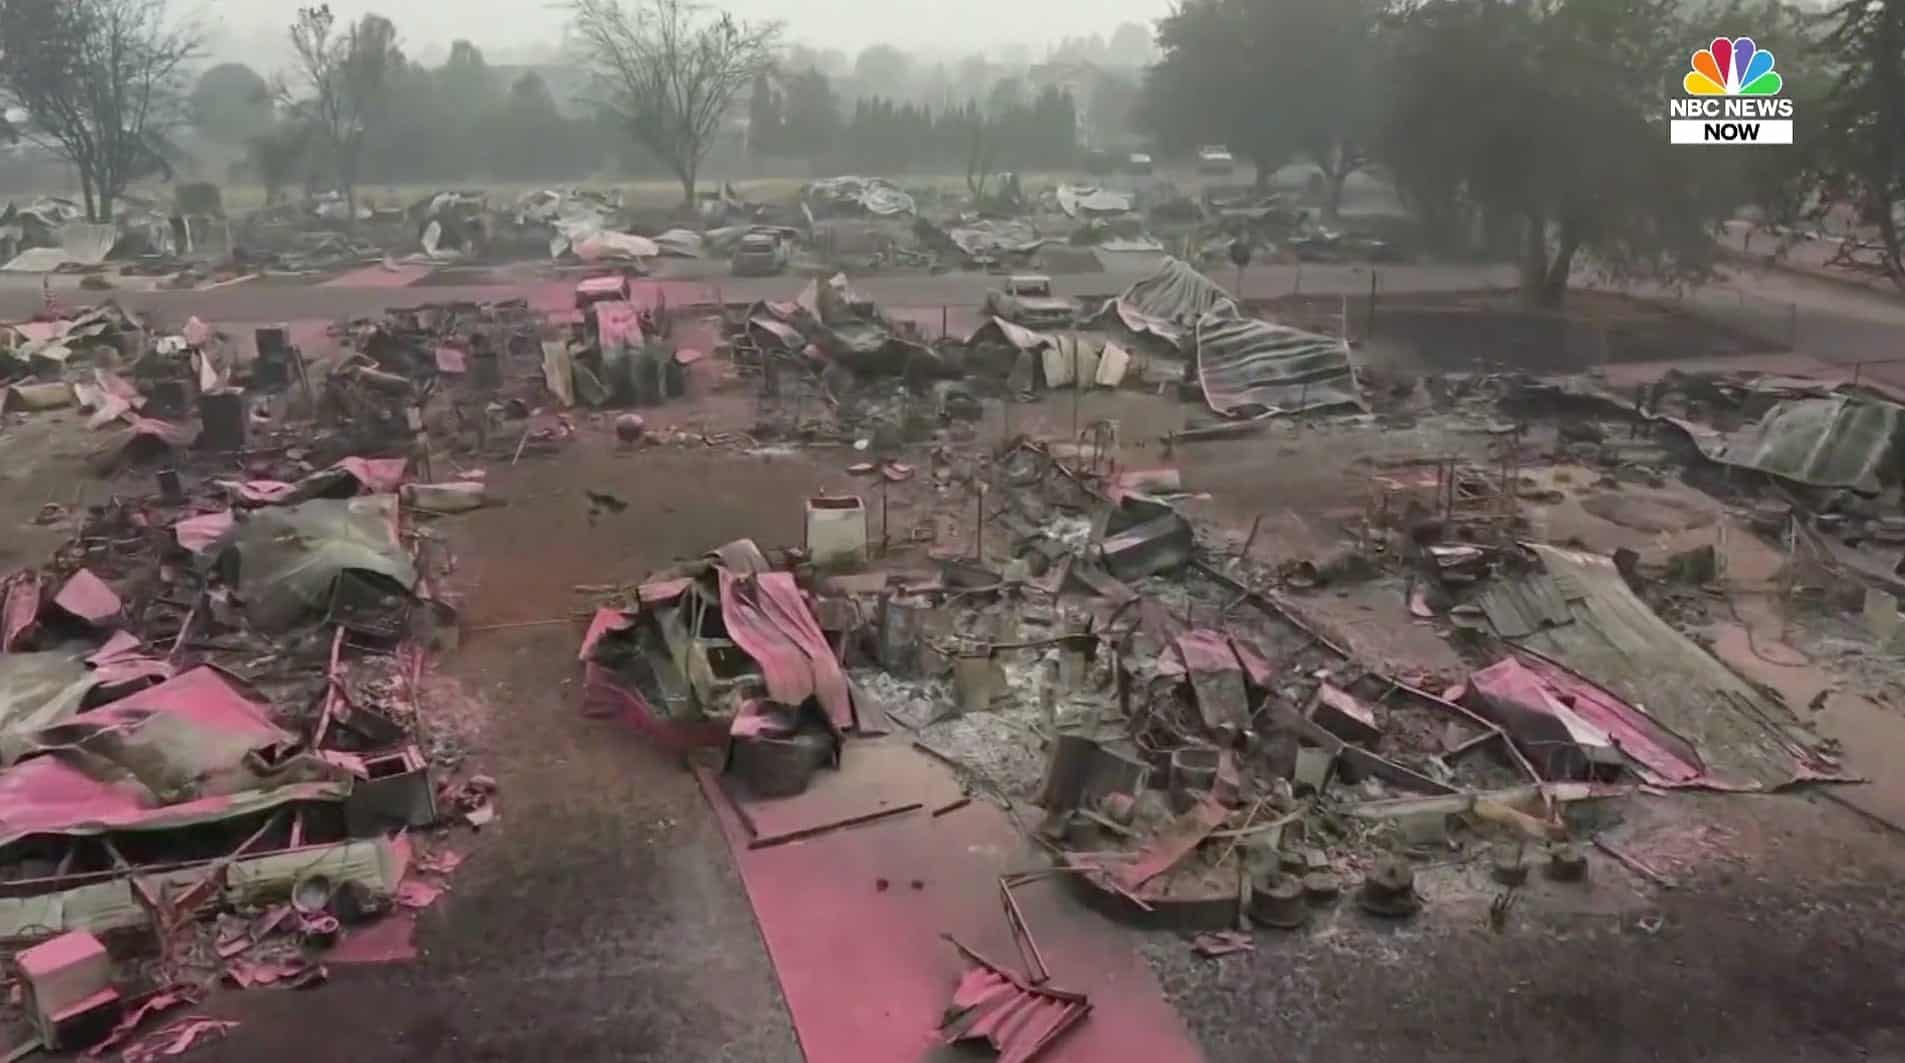 Drone footage shows wildfire-scorched neighborhoods in Oregon